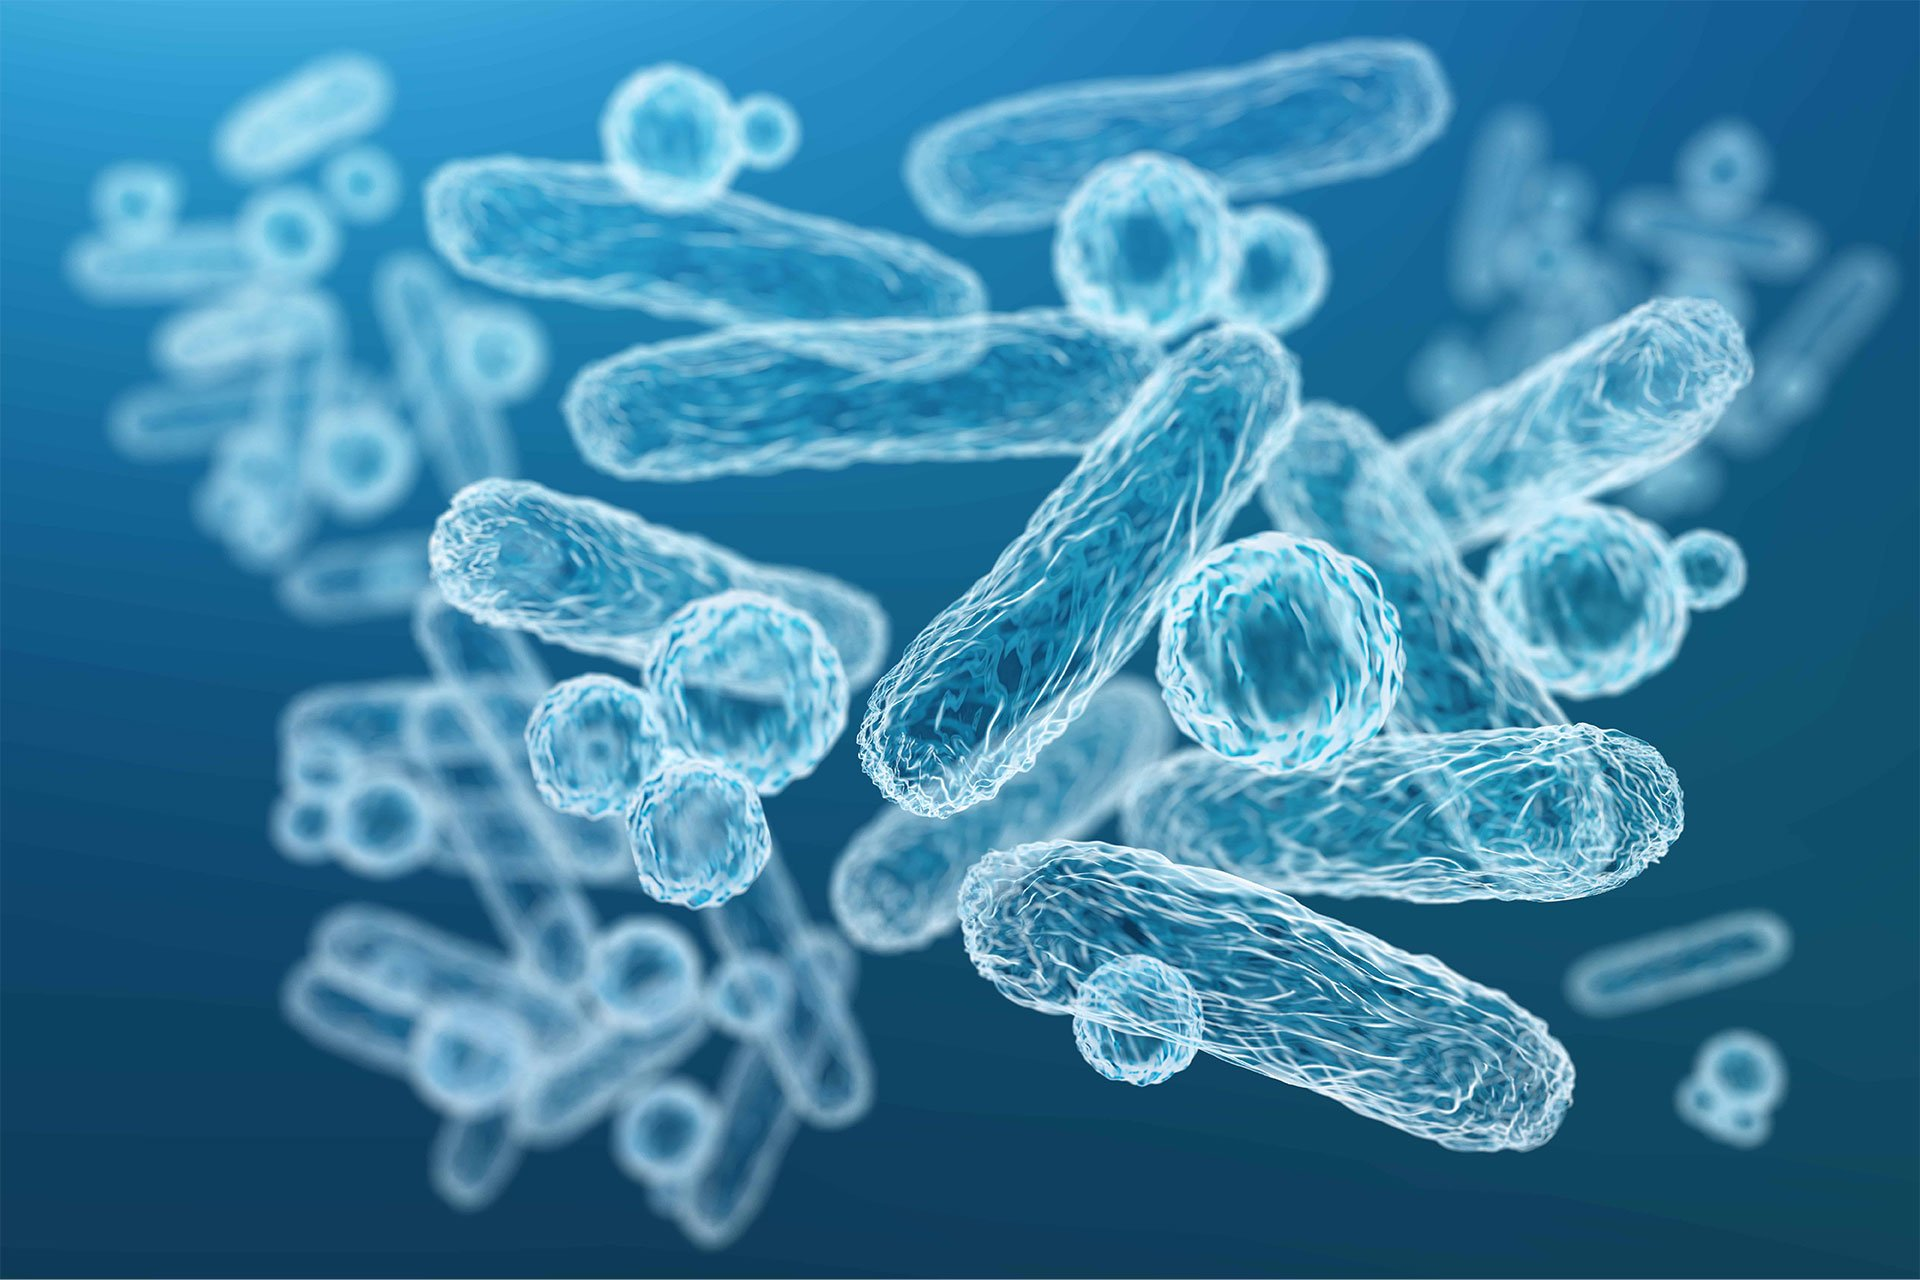 microbiome-background-image